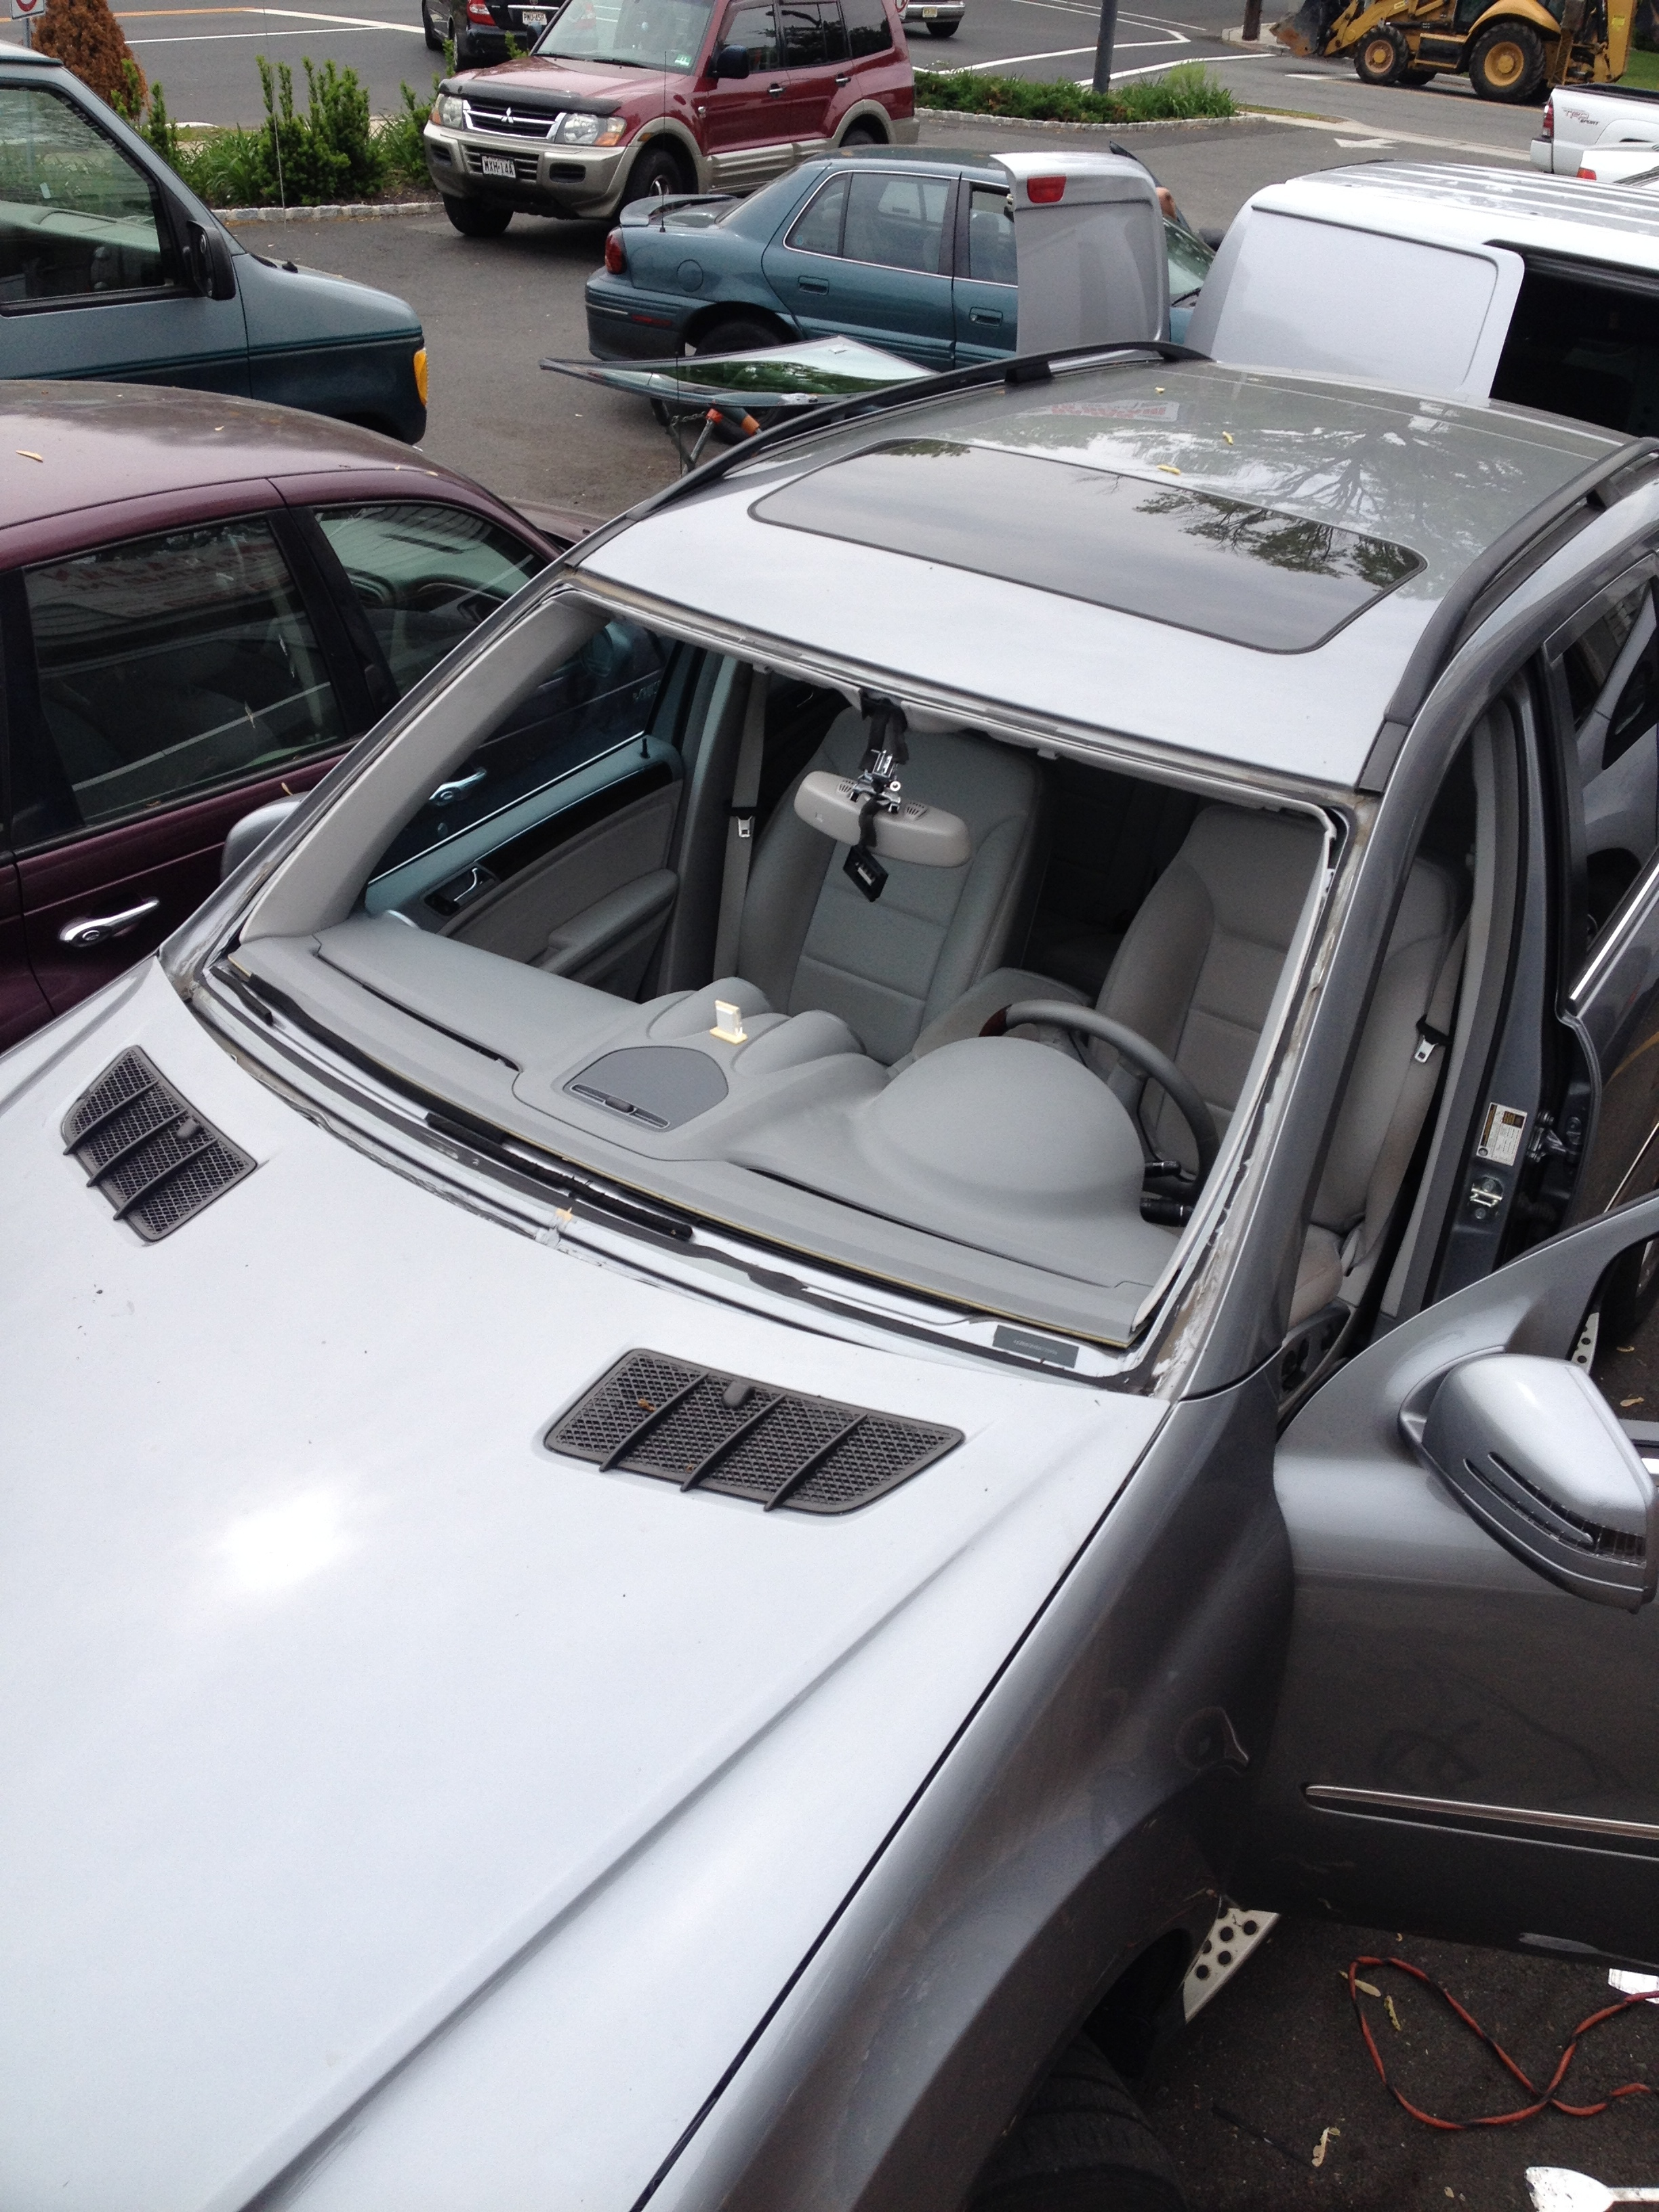 2012 Mercedes Benz GL450 windshield replacement Platinum Auto Glass NJ @732-993-6844@platinumautoglassnj